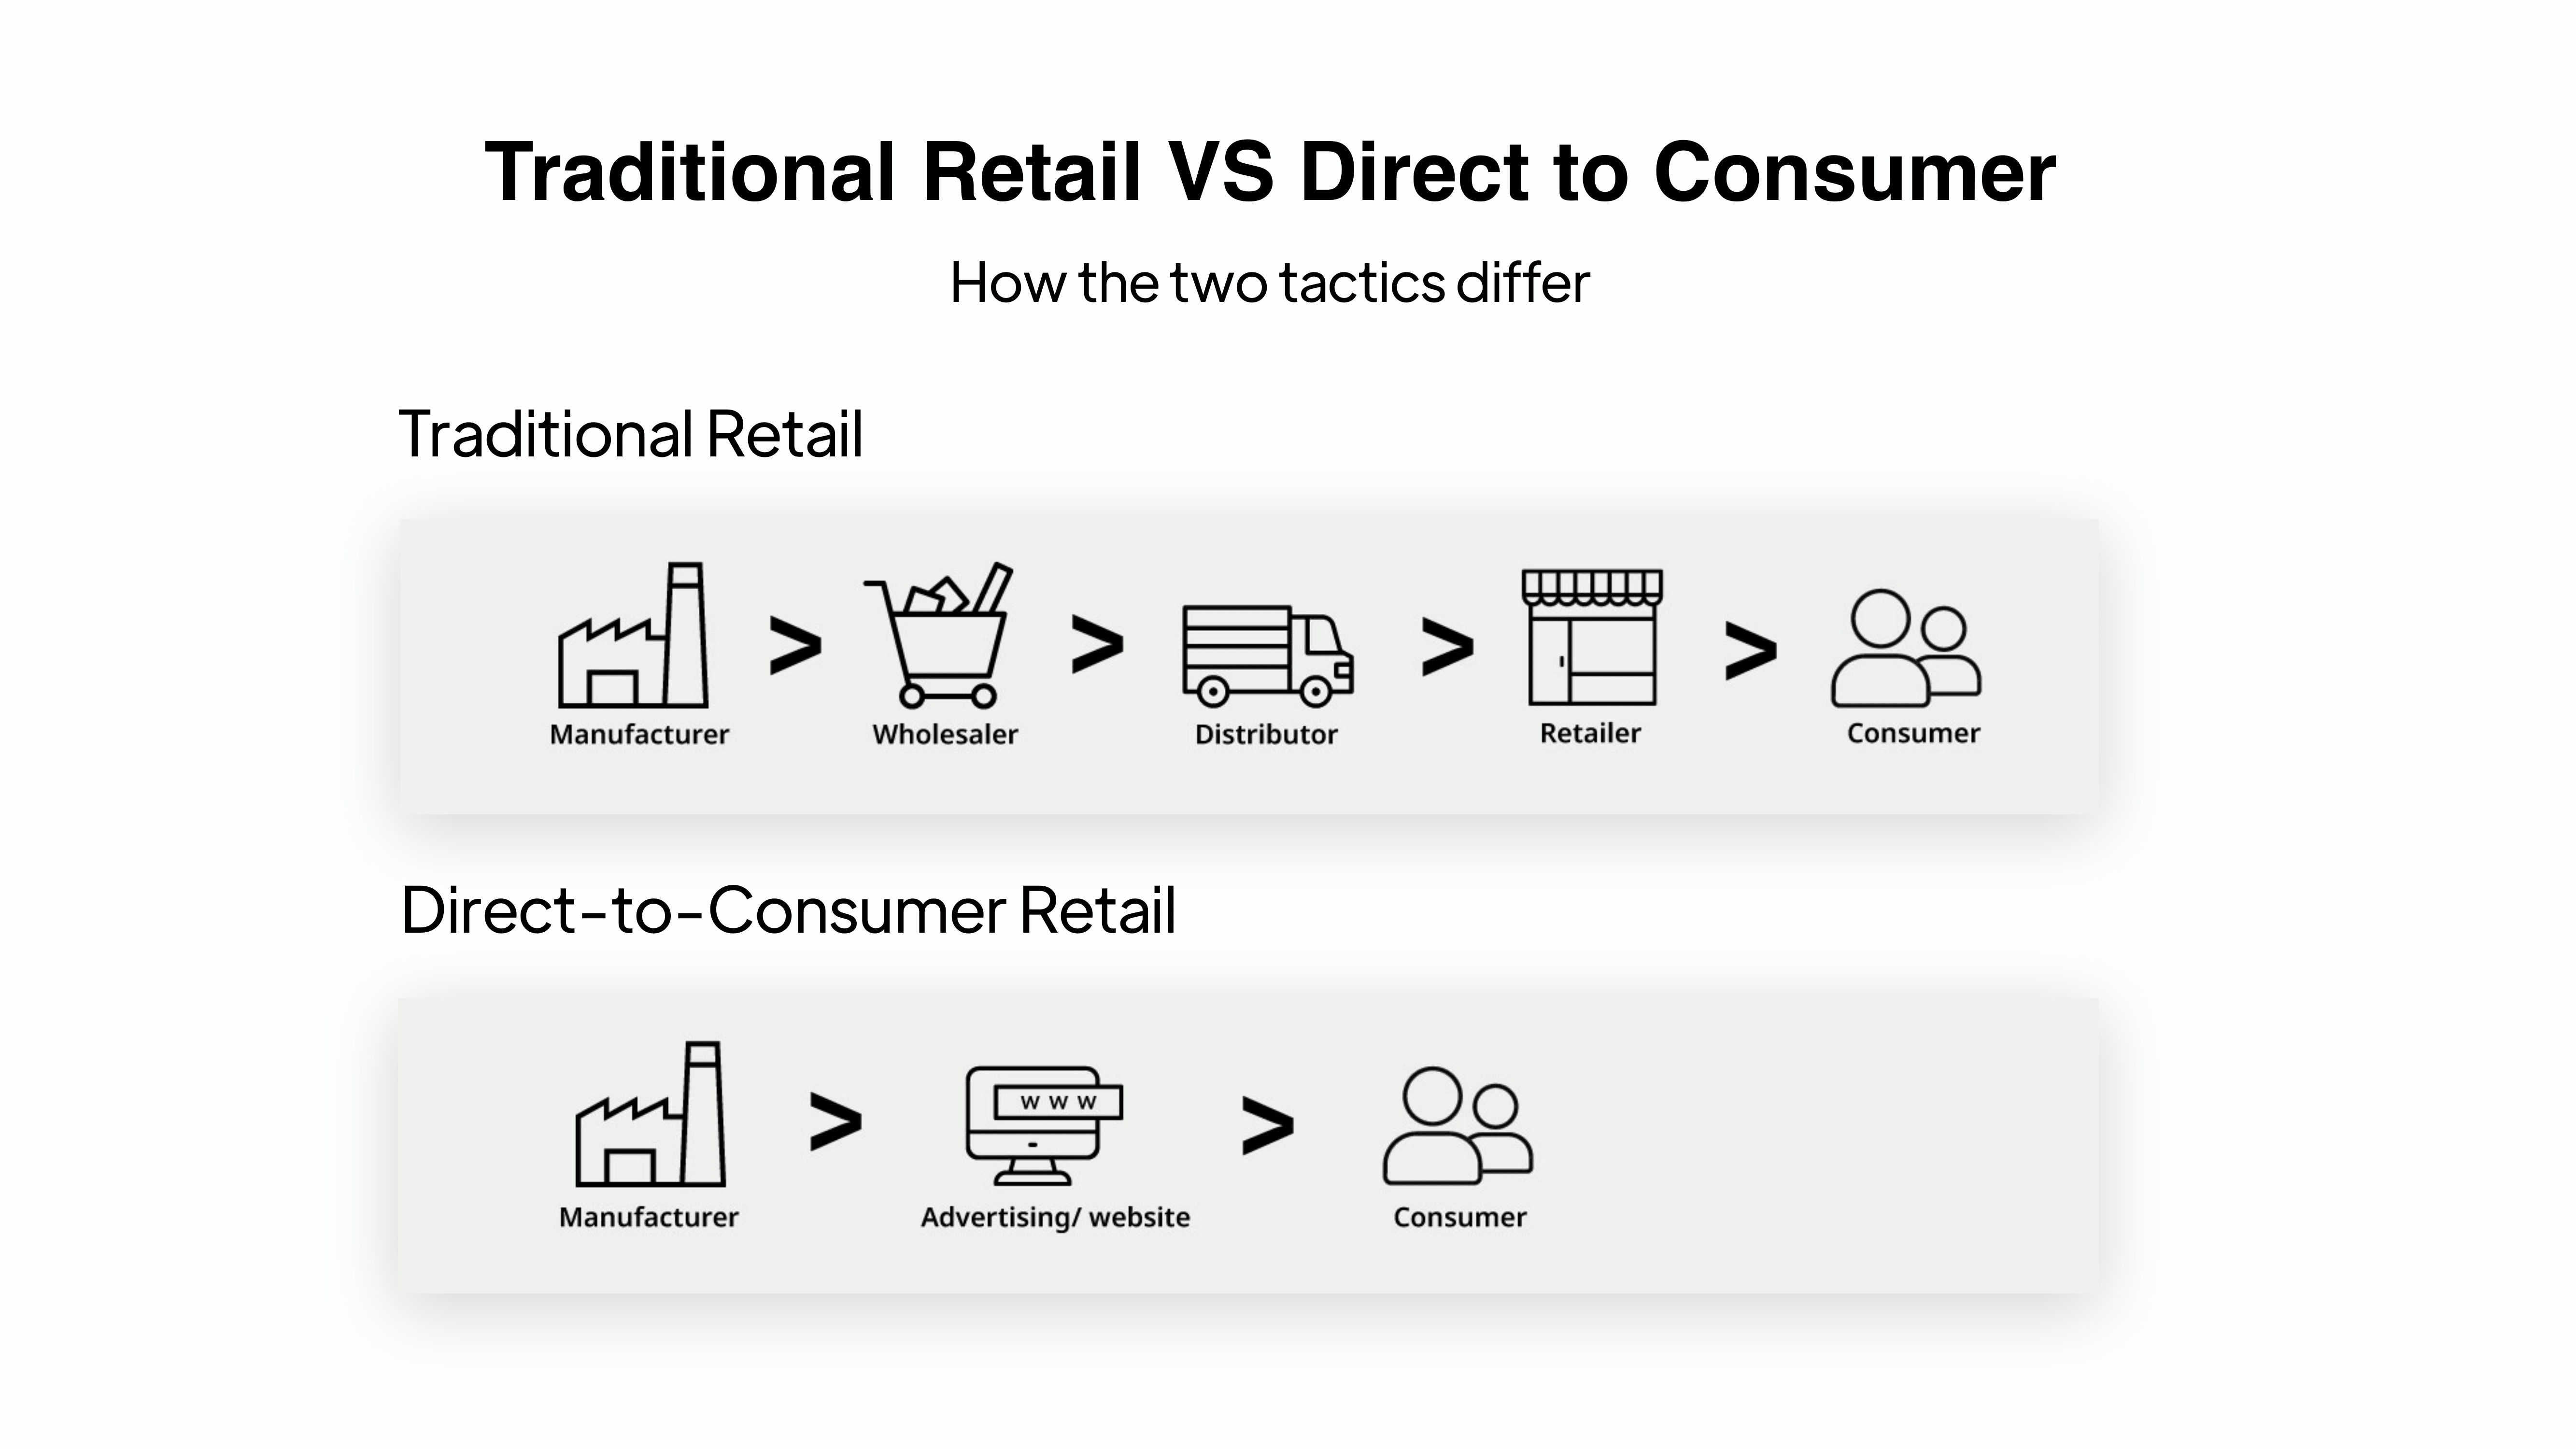 Digital agency on DTC strategy: How traditional retail differs from direct-to-consumer (DTC)